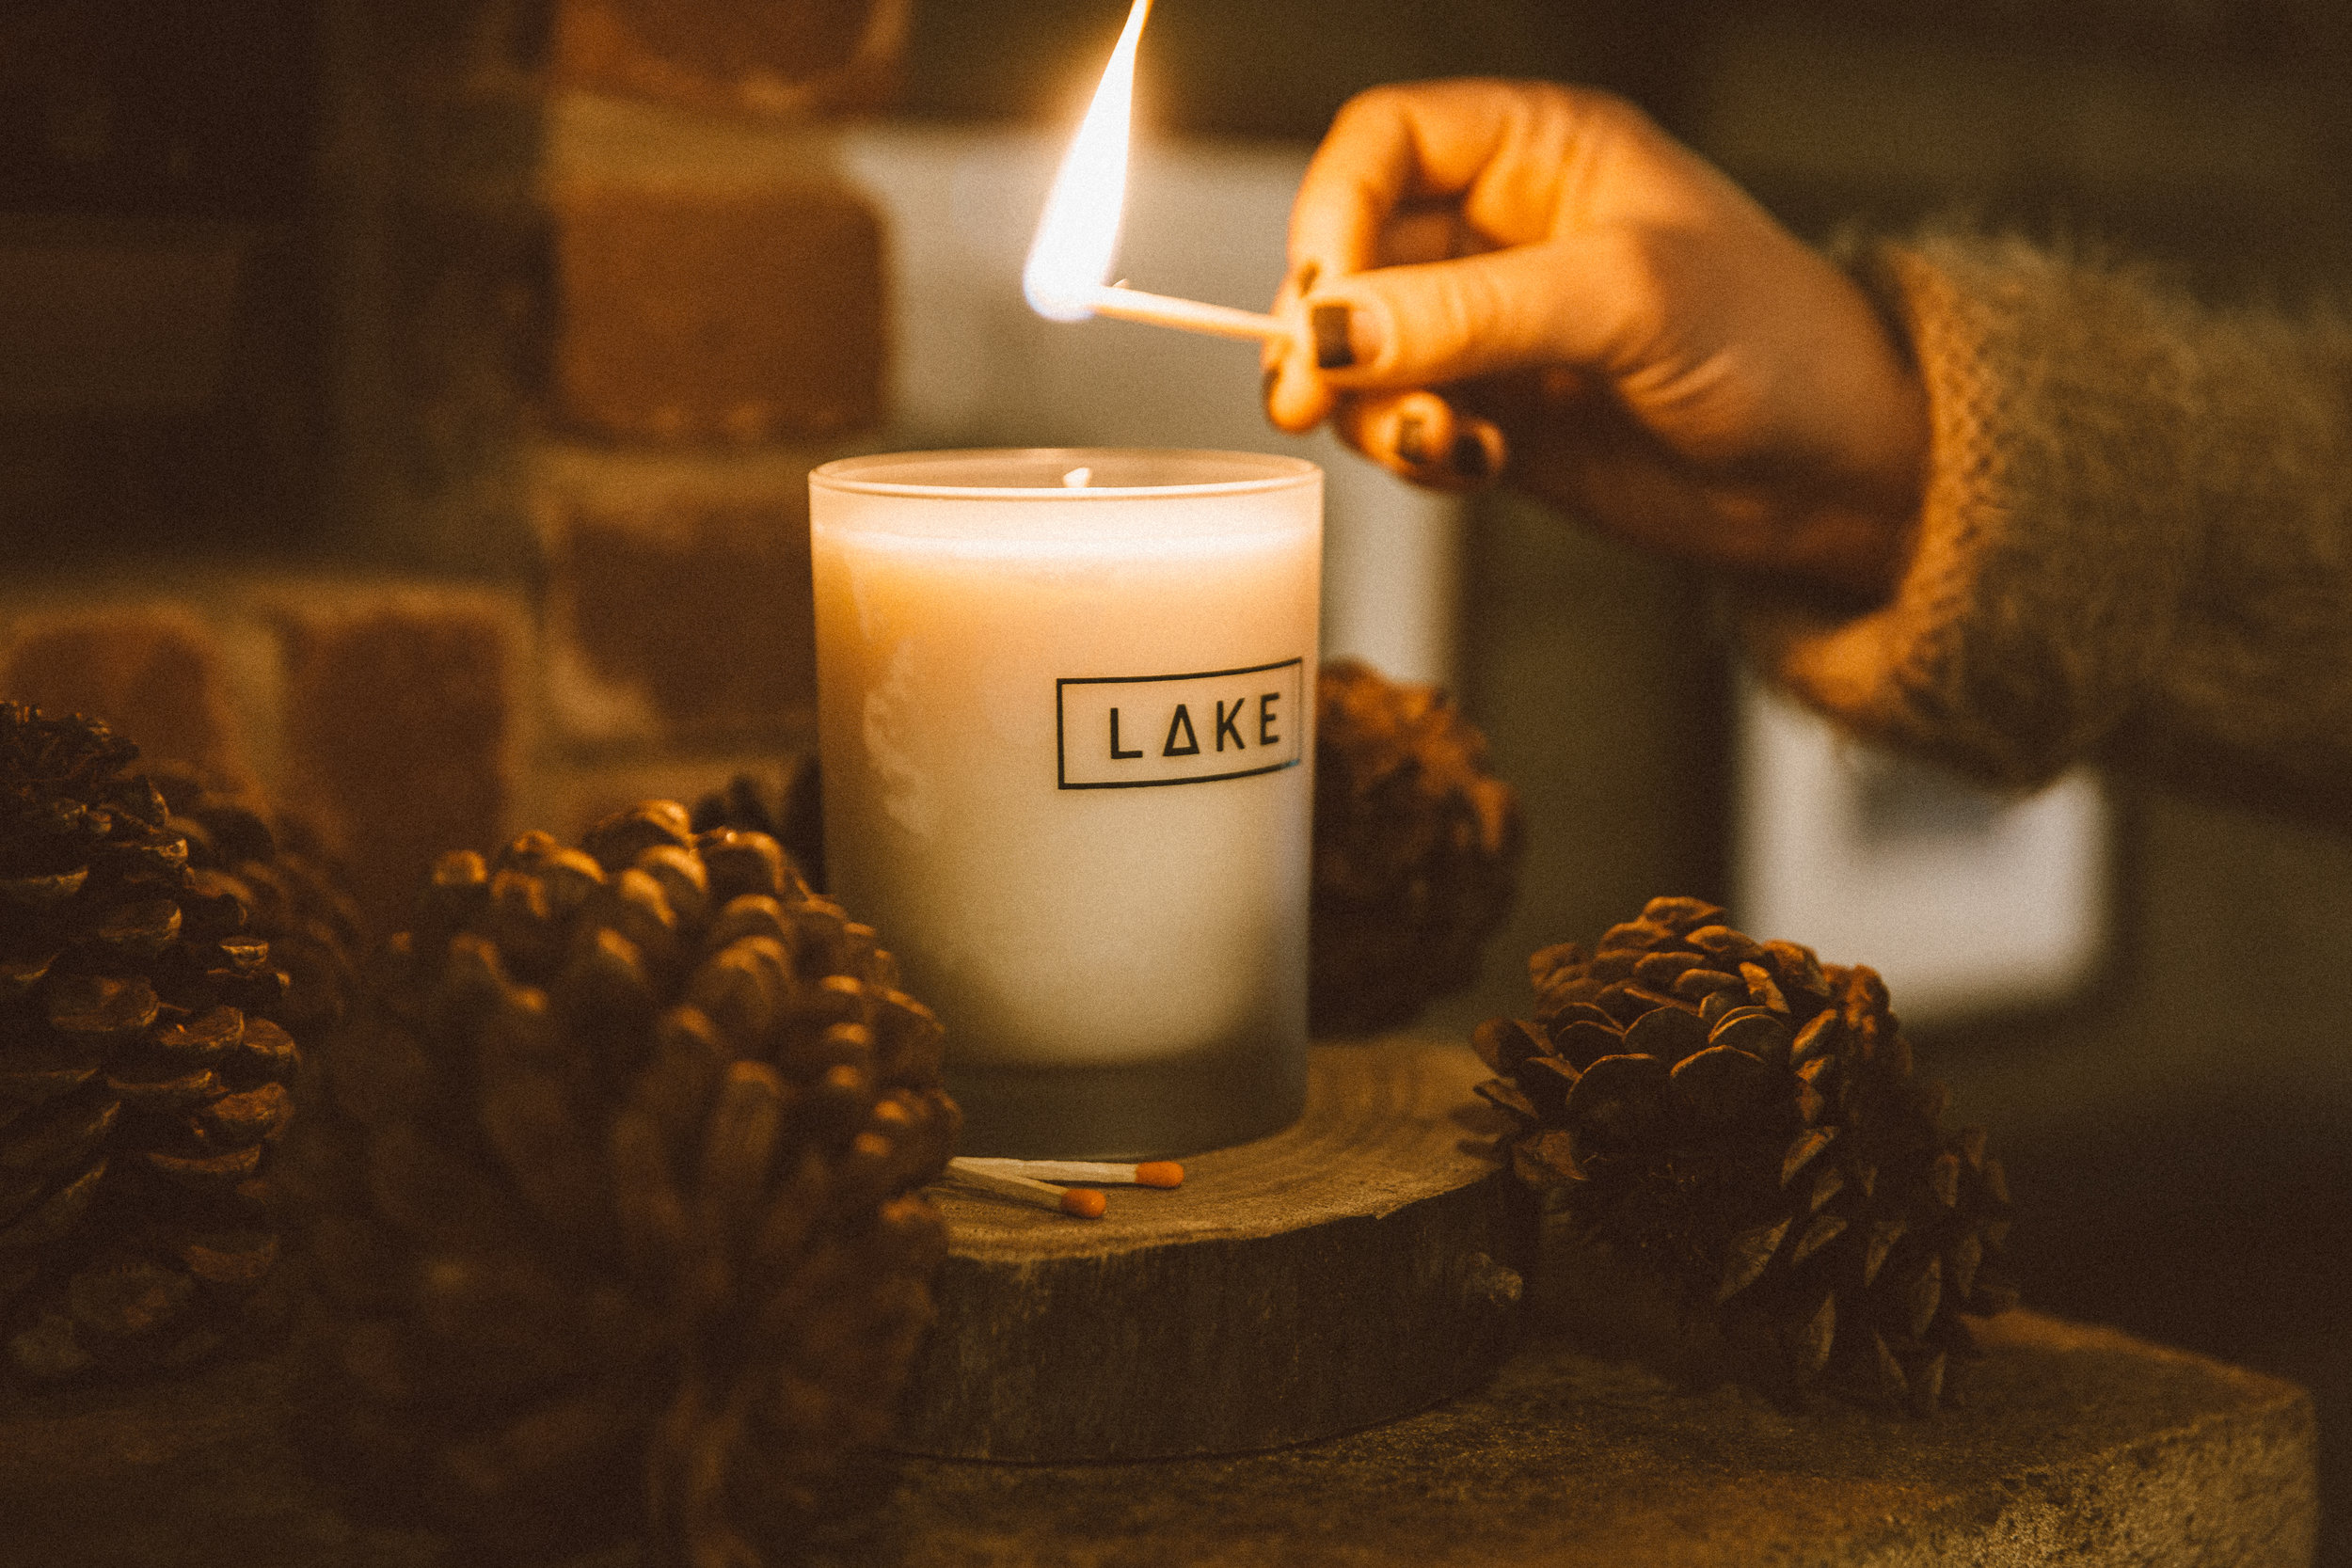 Lake Candle from Made in KC. All photo by Alyssa Broadus